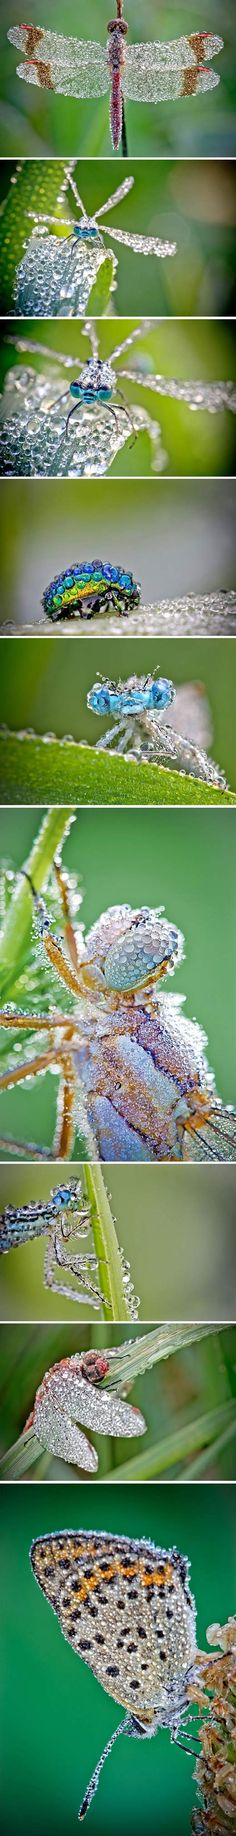 Insects with water droplets.